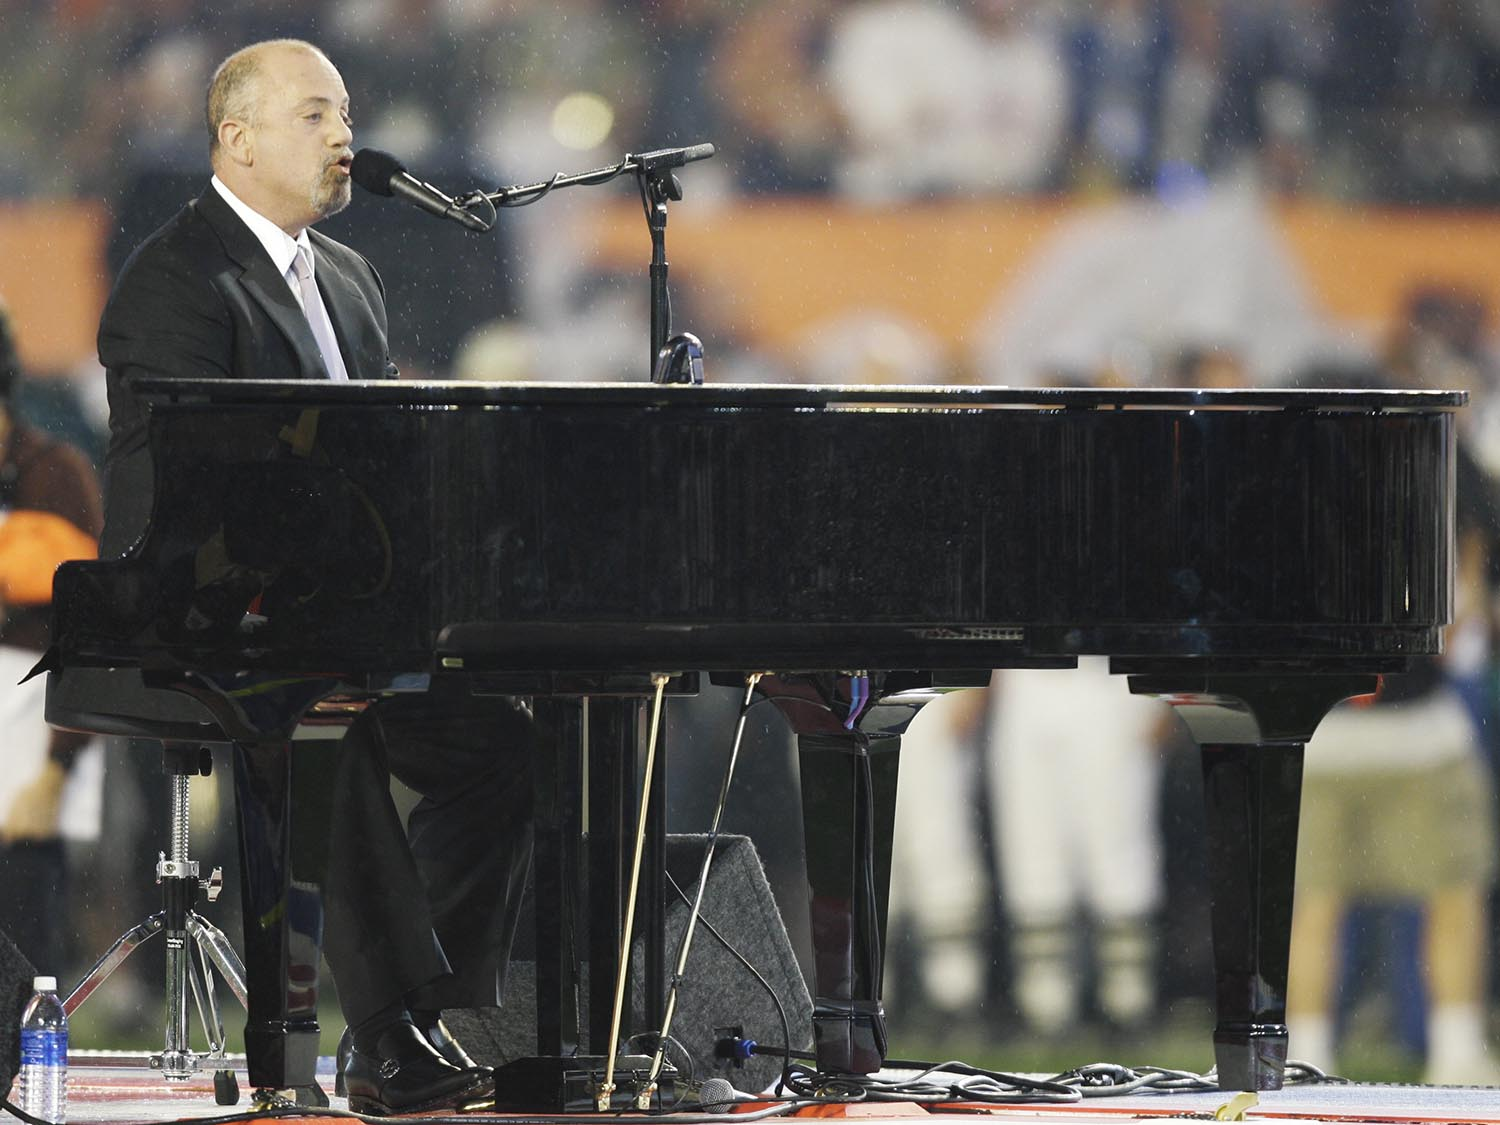 <div class='meta'><div class='origin-logo' data-origin='AP'></div><span class='caption-text' data-credit='AP Photo/Alex Brandon'>2007: Billy Joel sings the national anthem prior to the Super Bowl XLI football game at Dolphin Stadium in Miami on Sunday, Feb. 4, 2007.</span></div>